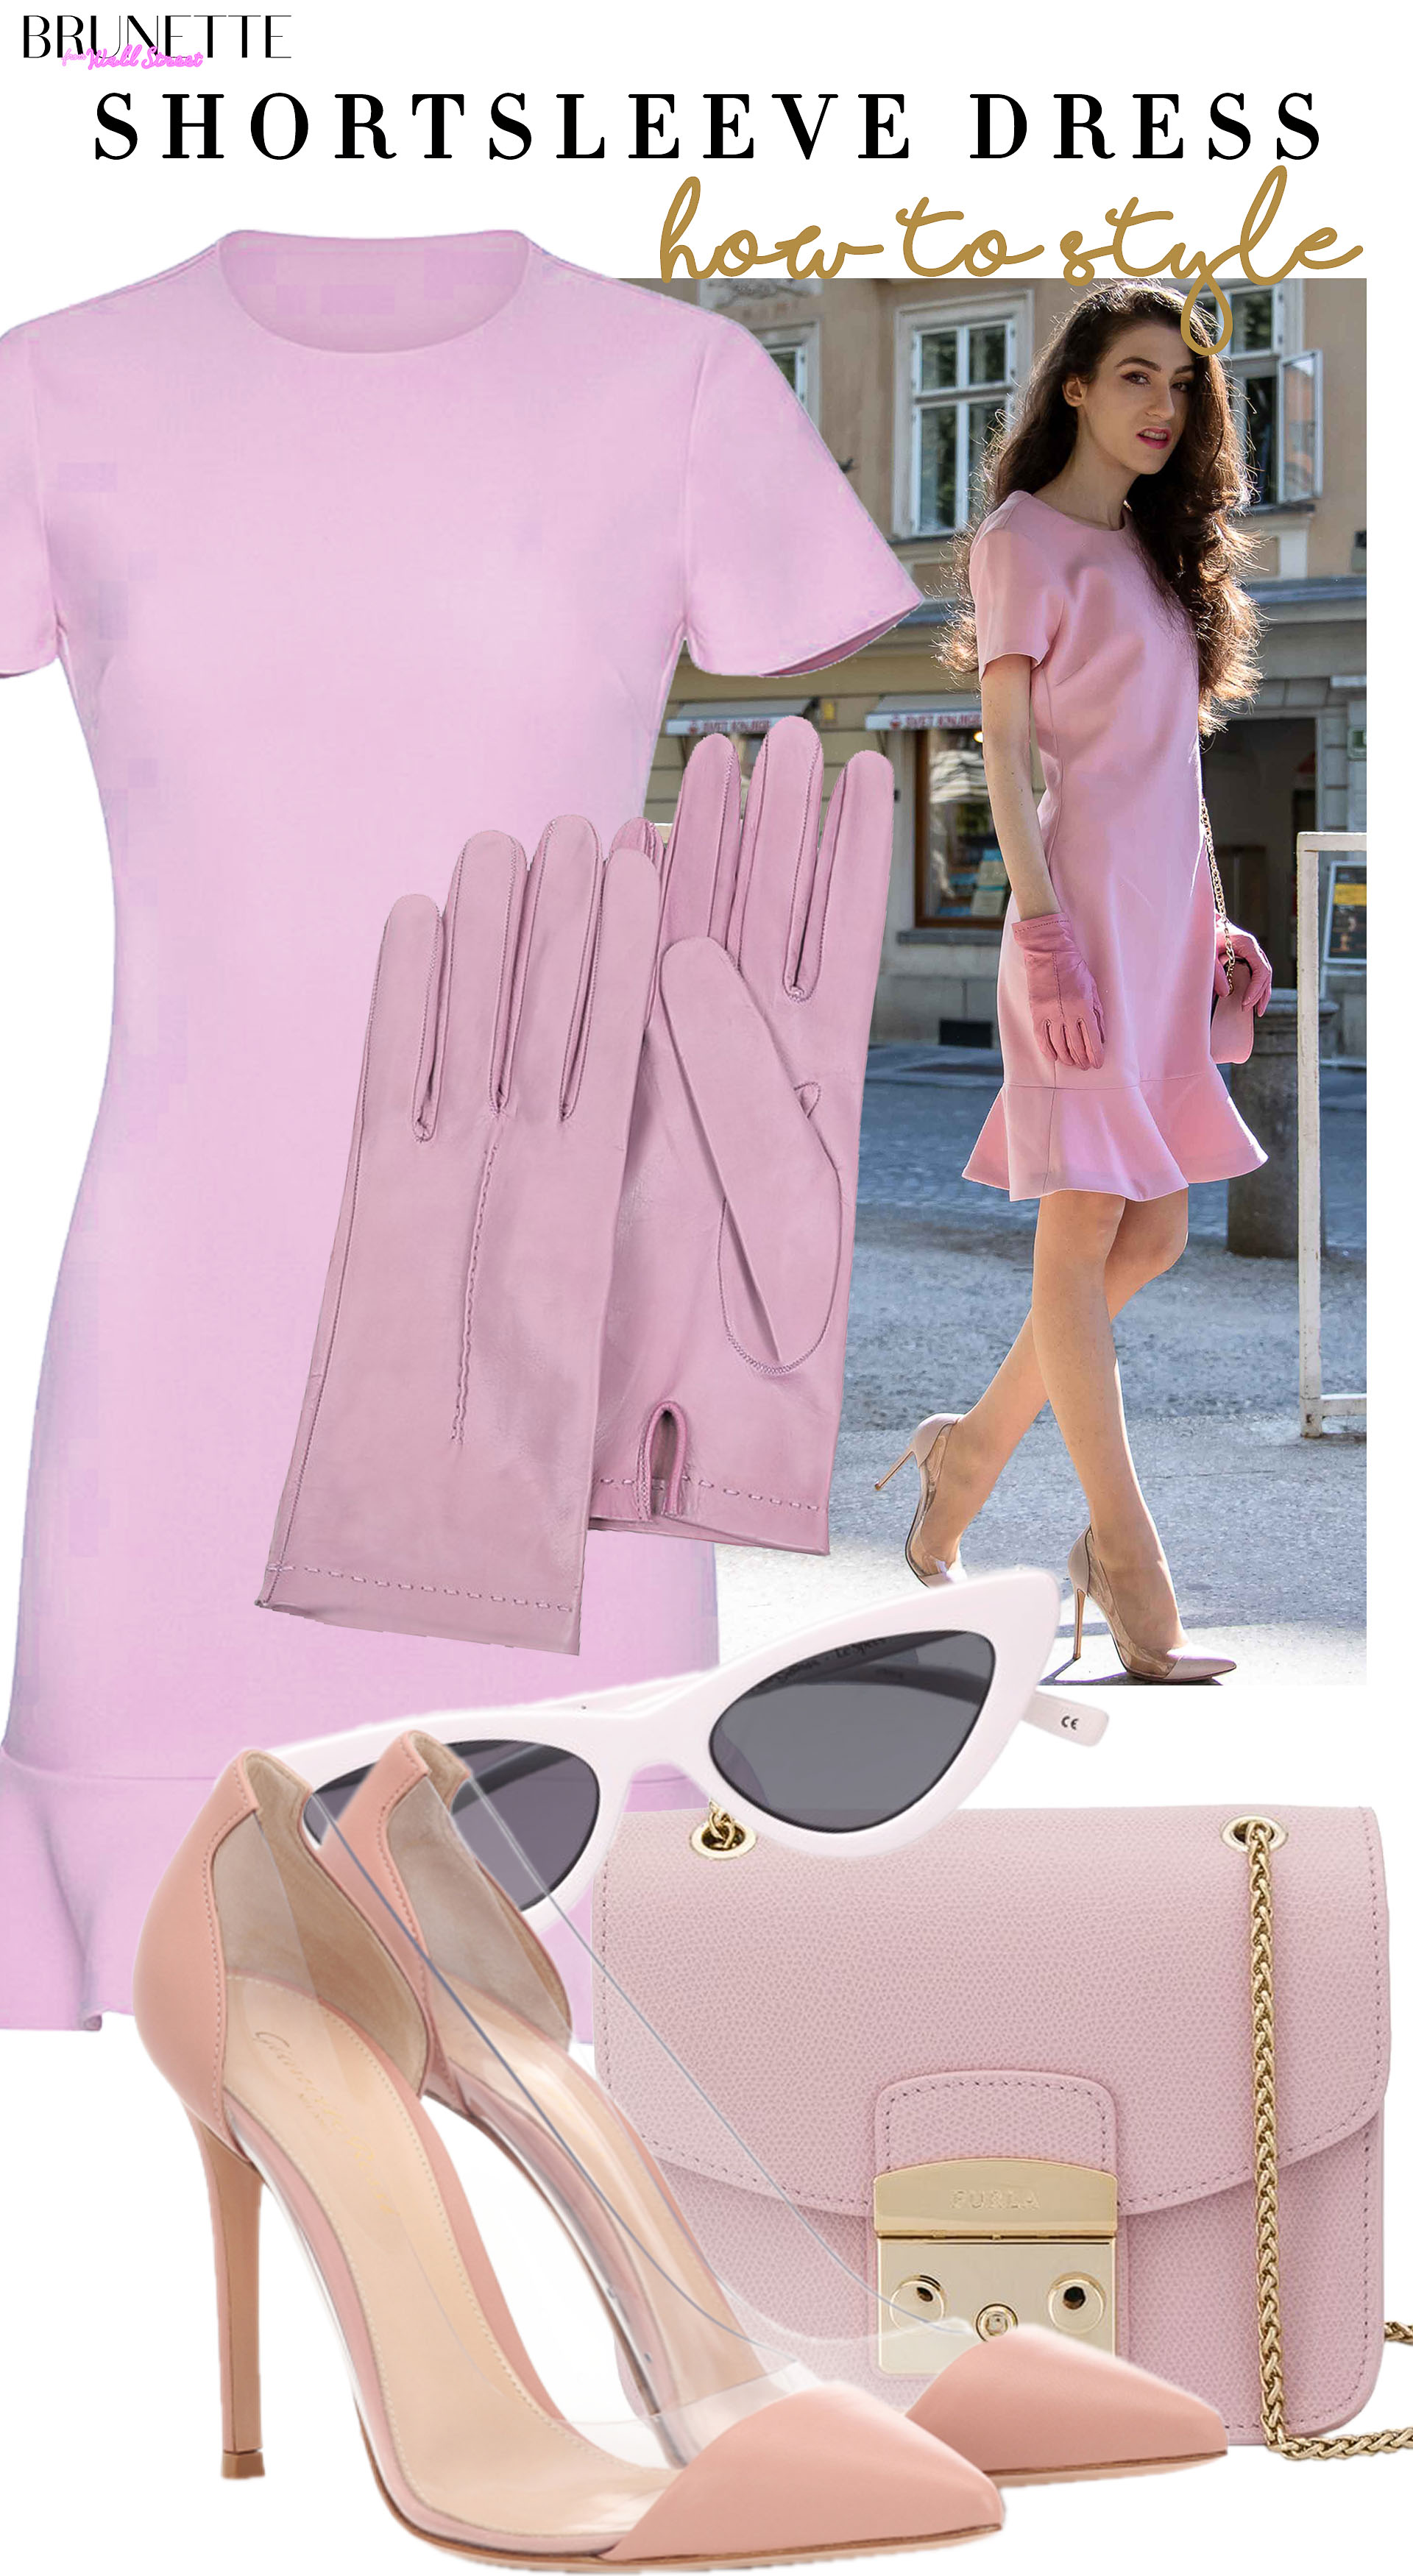 Brunette from Wall Street how to style pstel pink short sleeve cocktail dress Furla metropolis bag Gianvito Rossi plexi pumps leather gloves for summer wedding